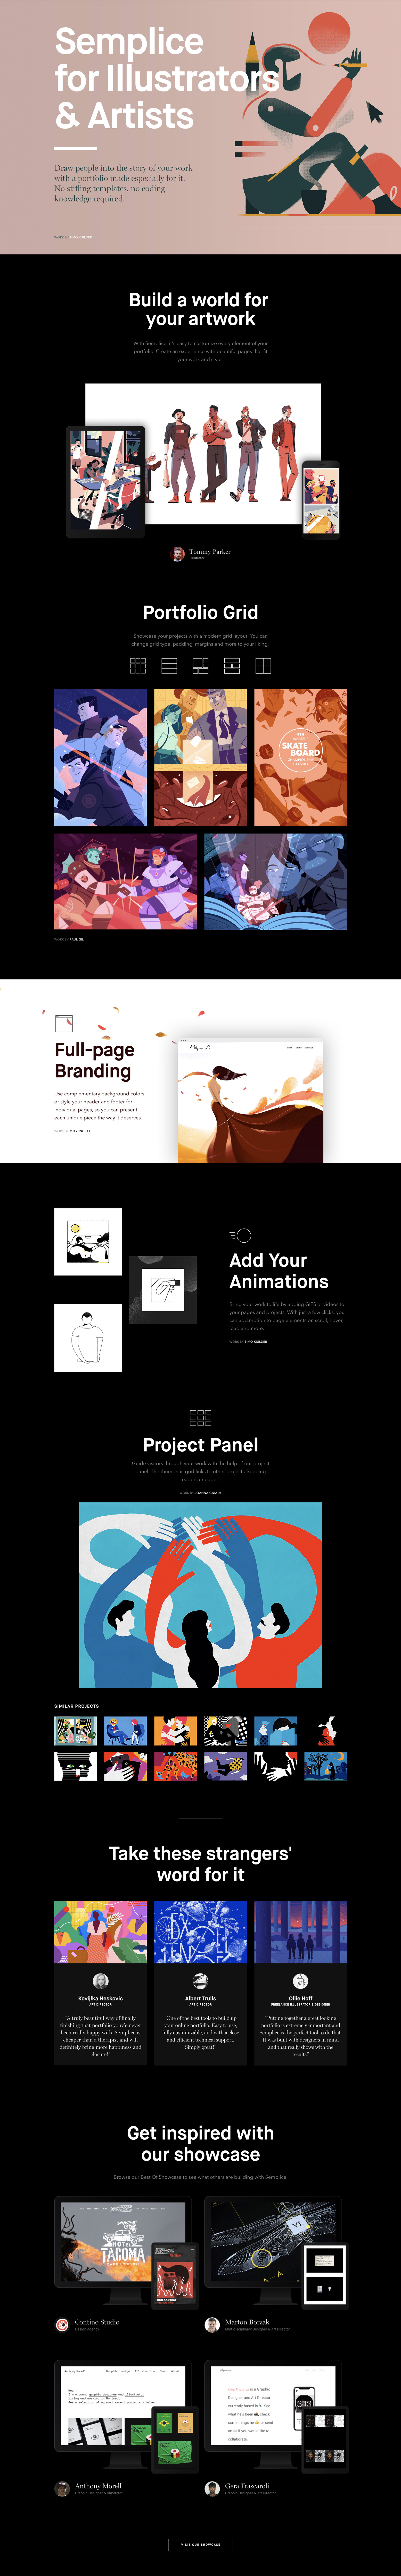 Semplice-for-Illustrators-Artists-Full-Page